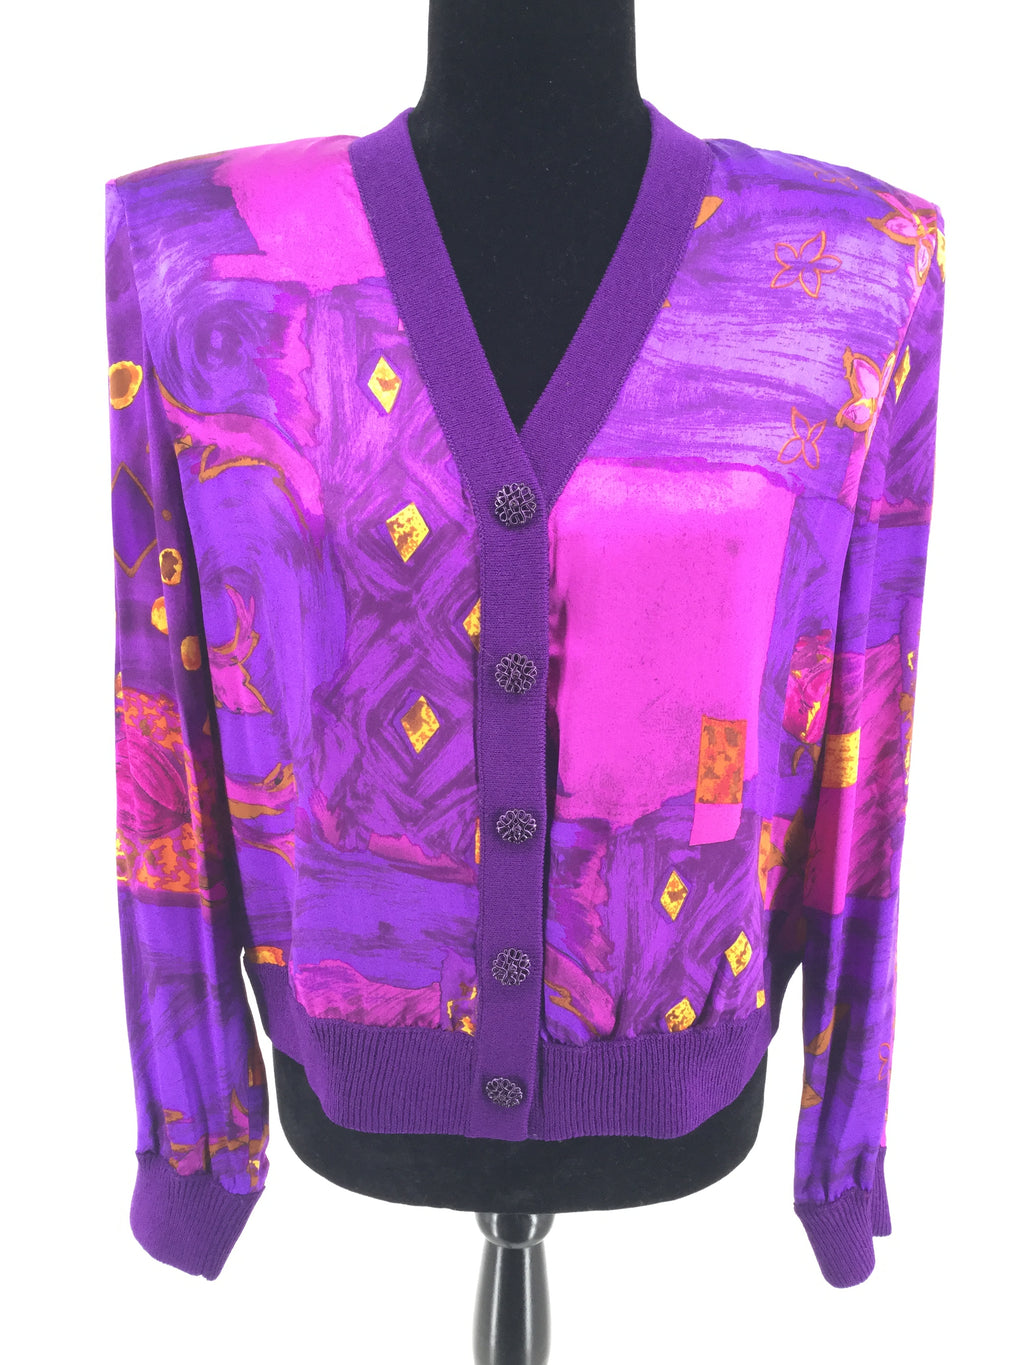 St John Collection Sweater Cardigan Lightweight Size:10